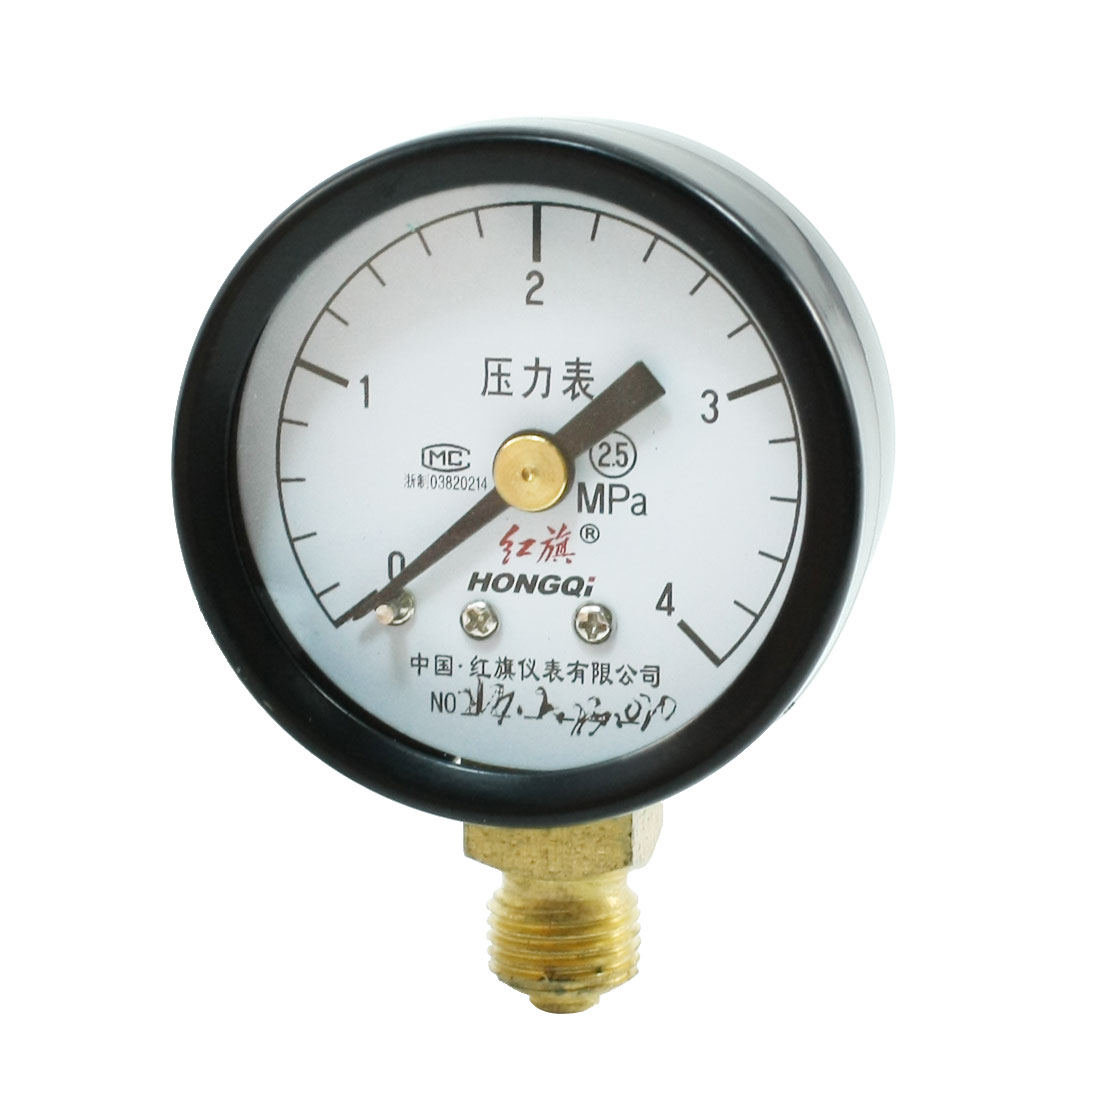 0-4Mpa 10mm Male Thread Black Metal Case Pneumatic Pressure Gauge